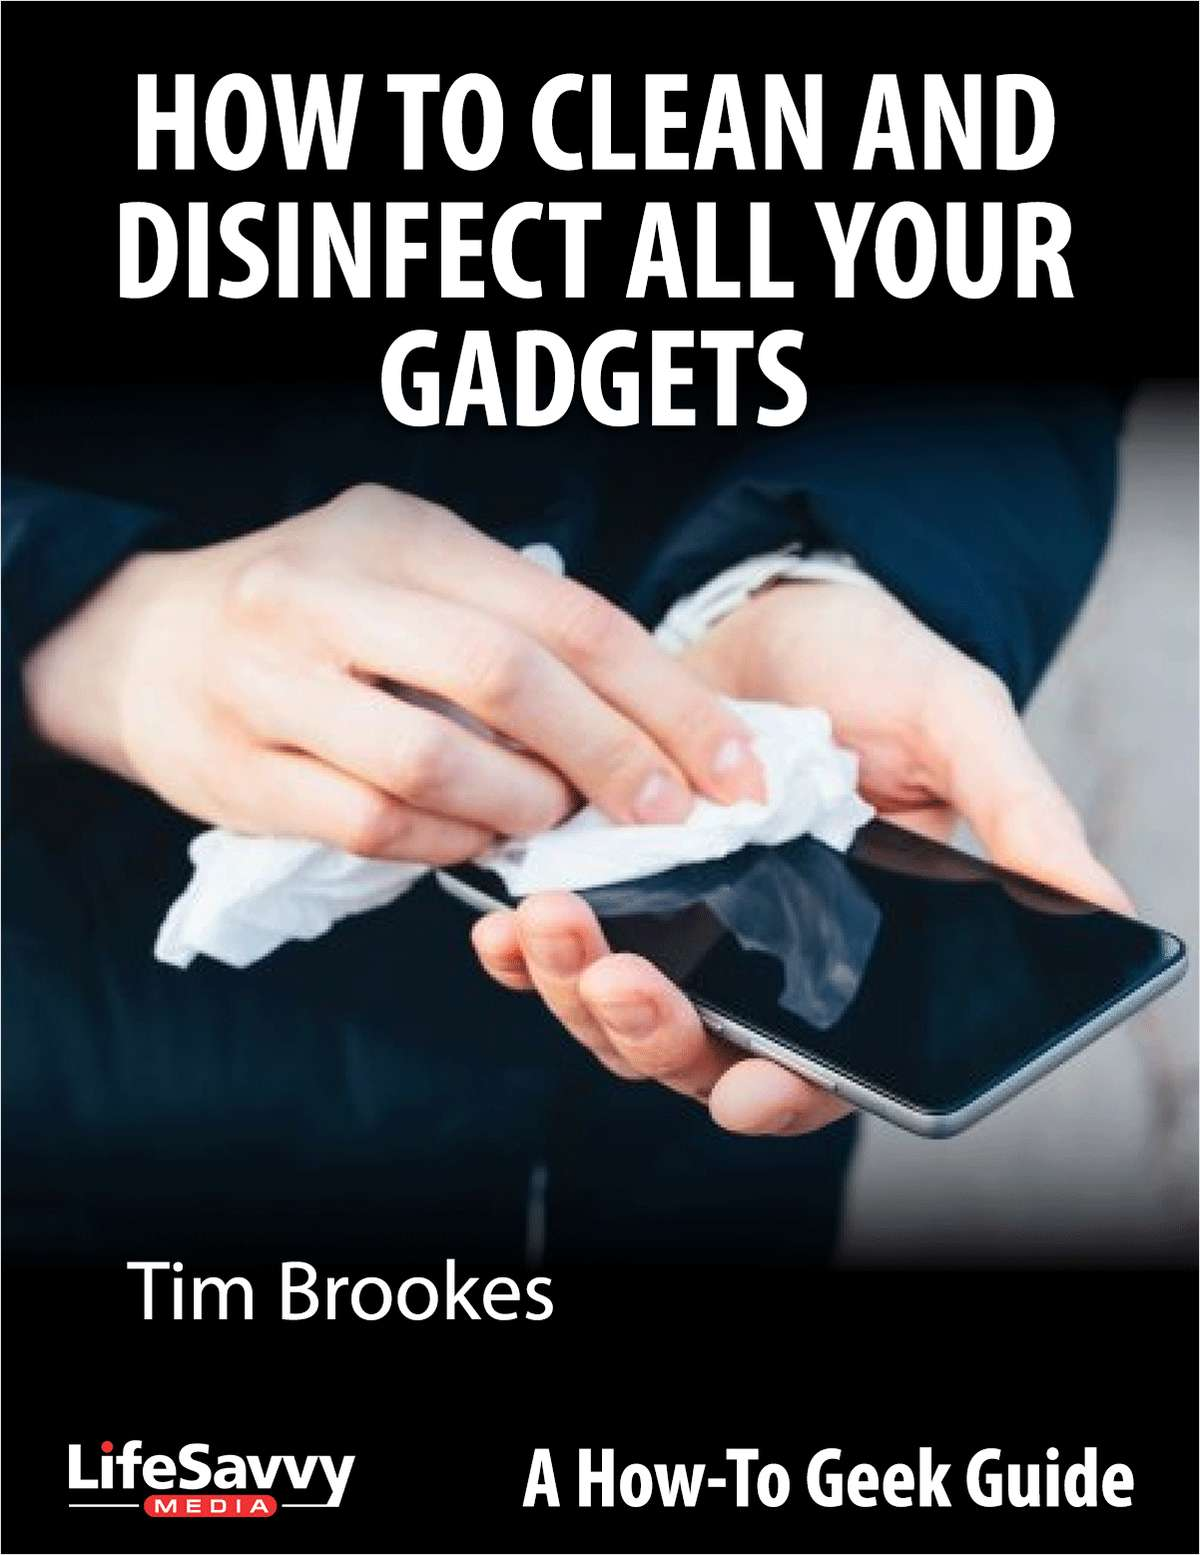 How to Clean and Disinfect All Your Gadgets